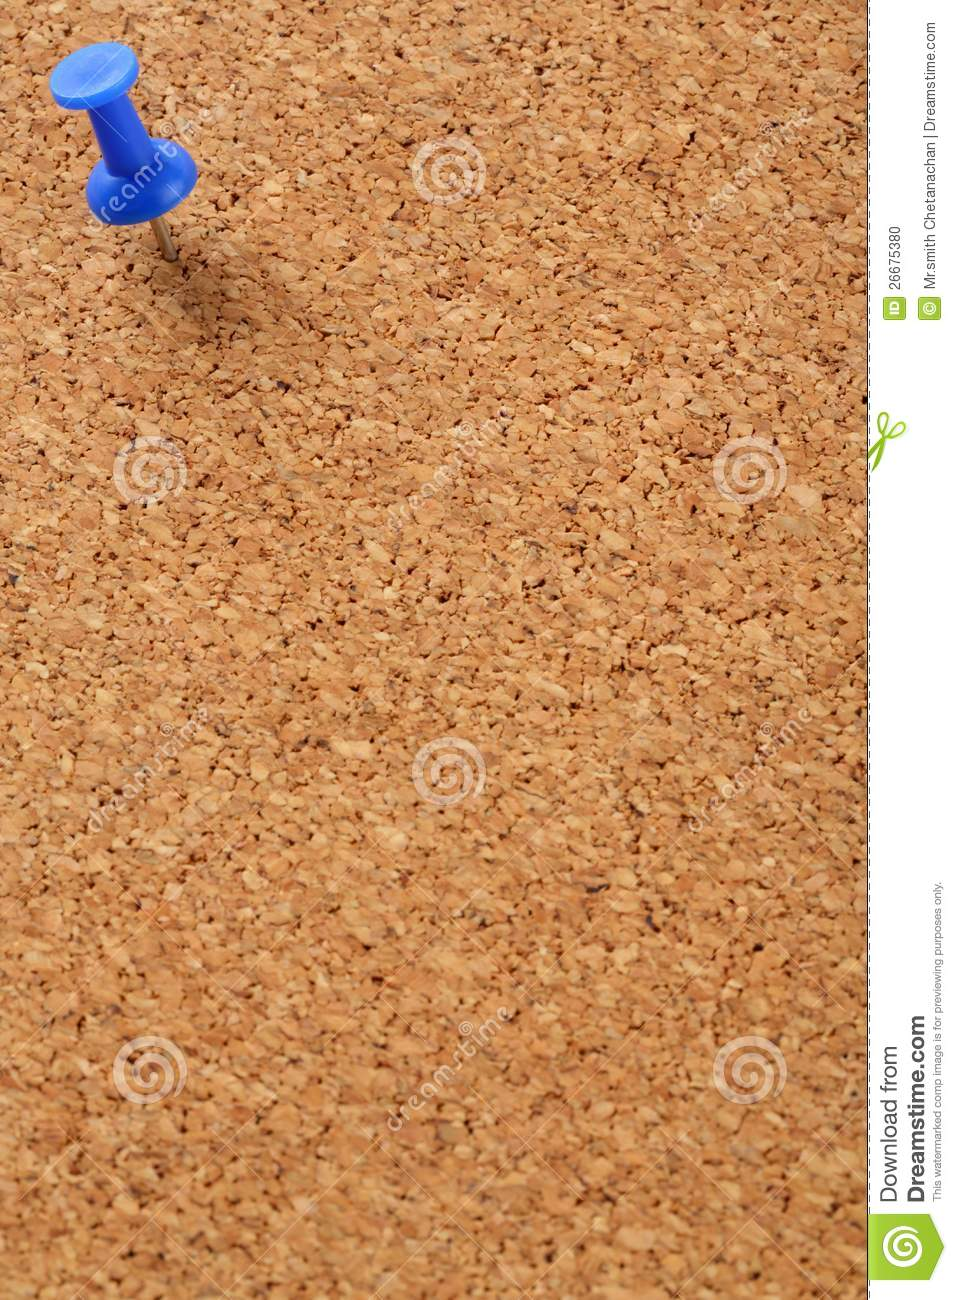 Cork board with blue pin stock photo image 26675380 for Cork board pin display